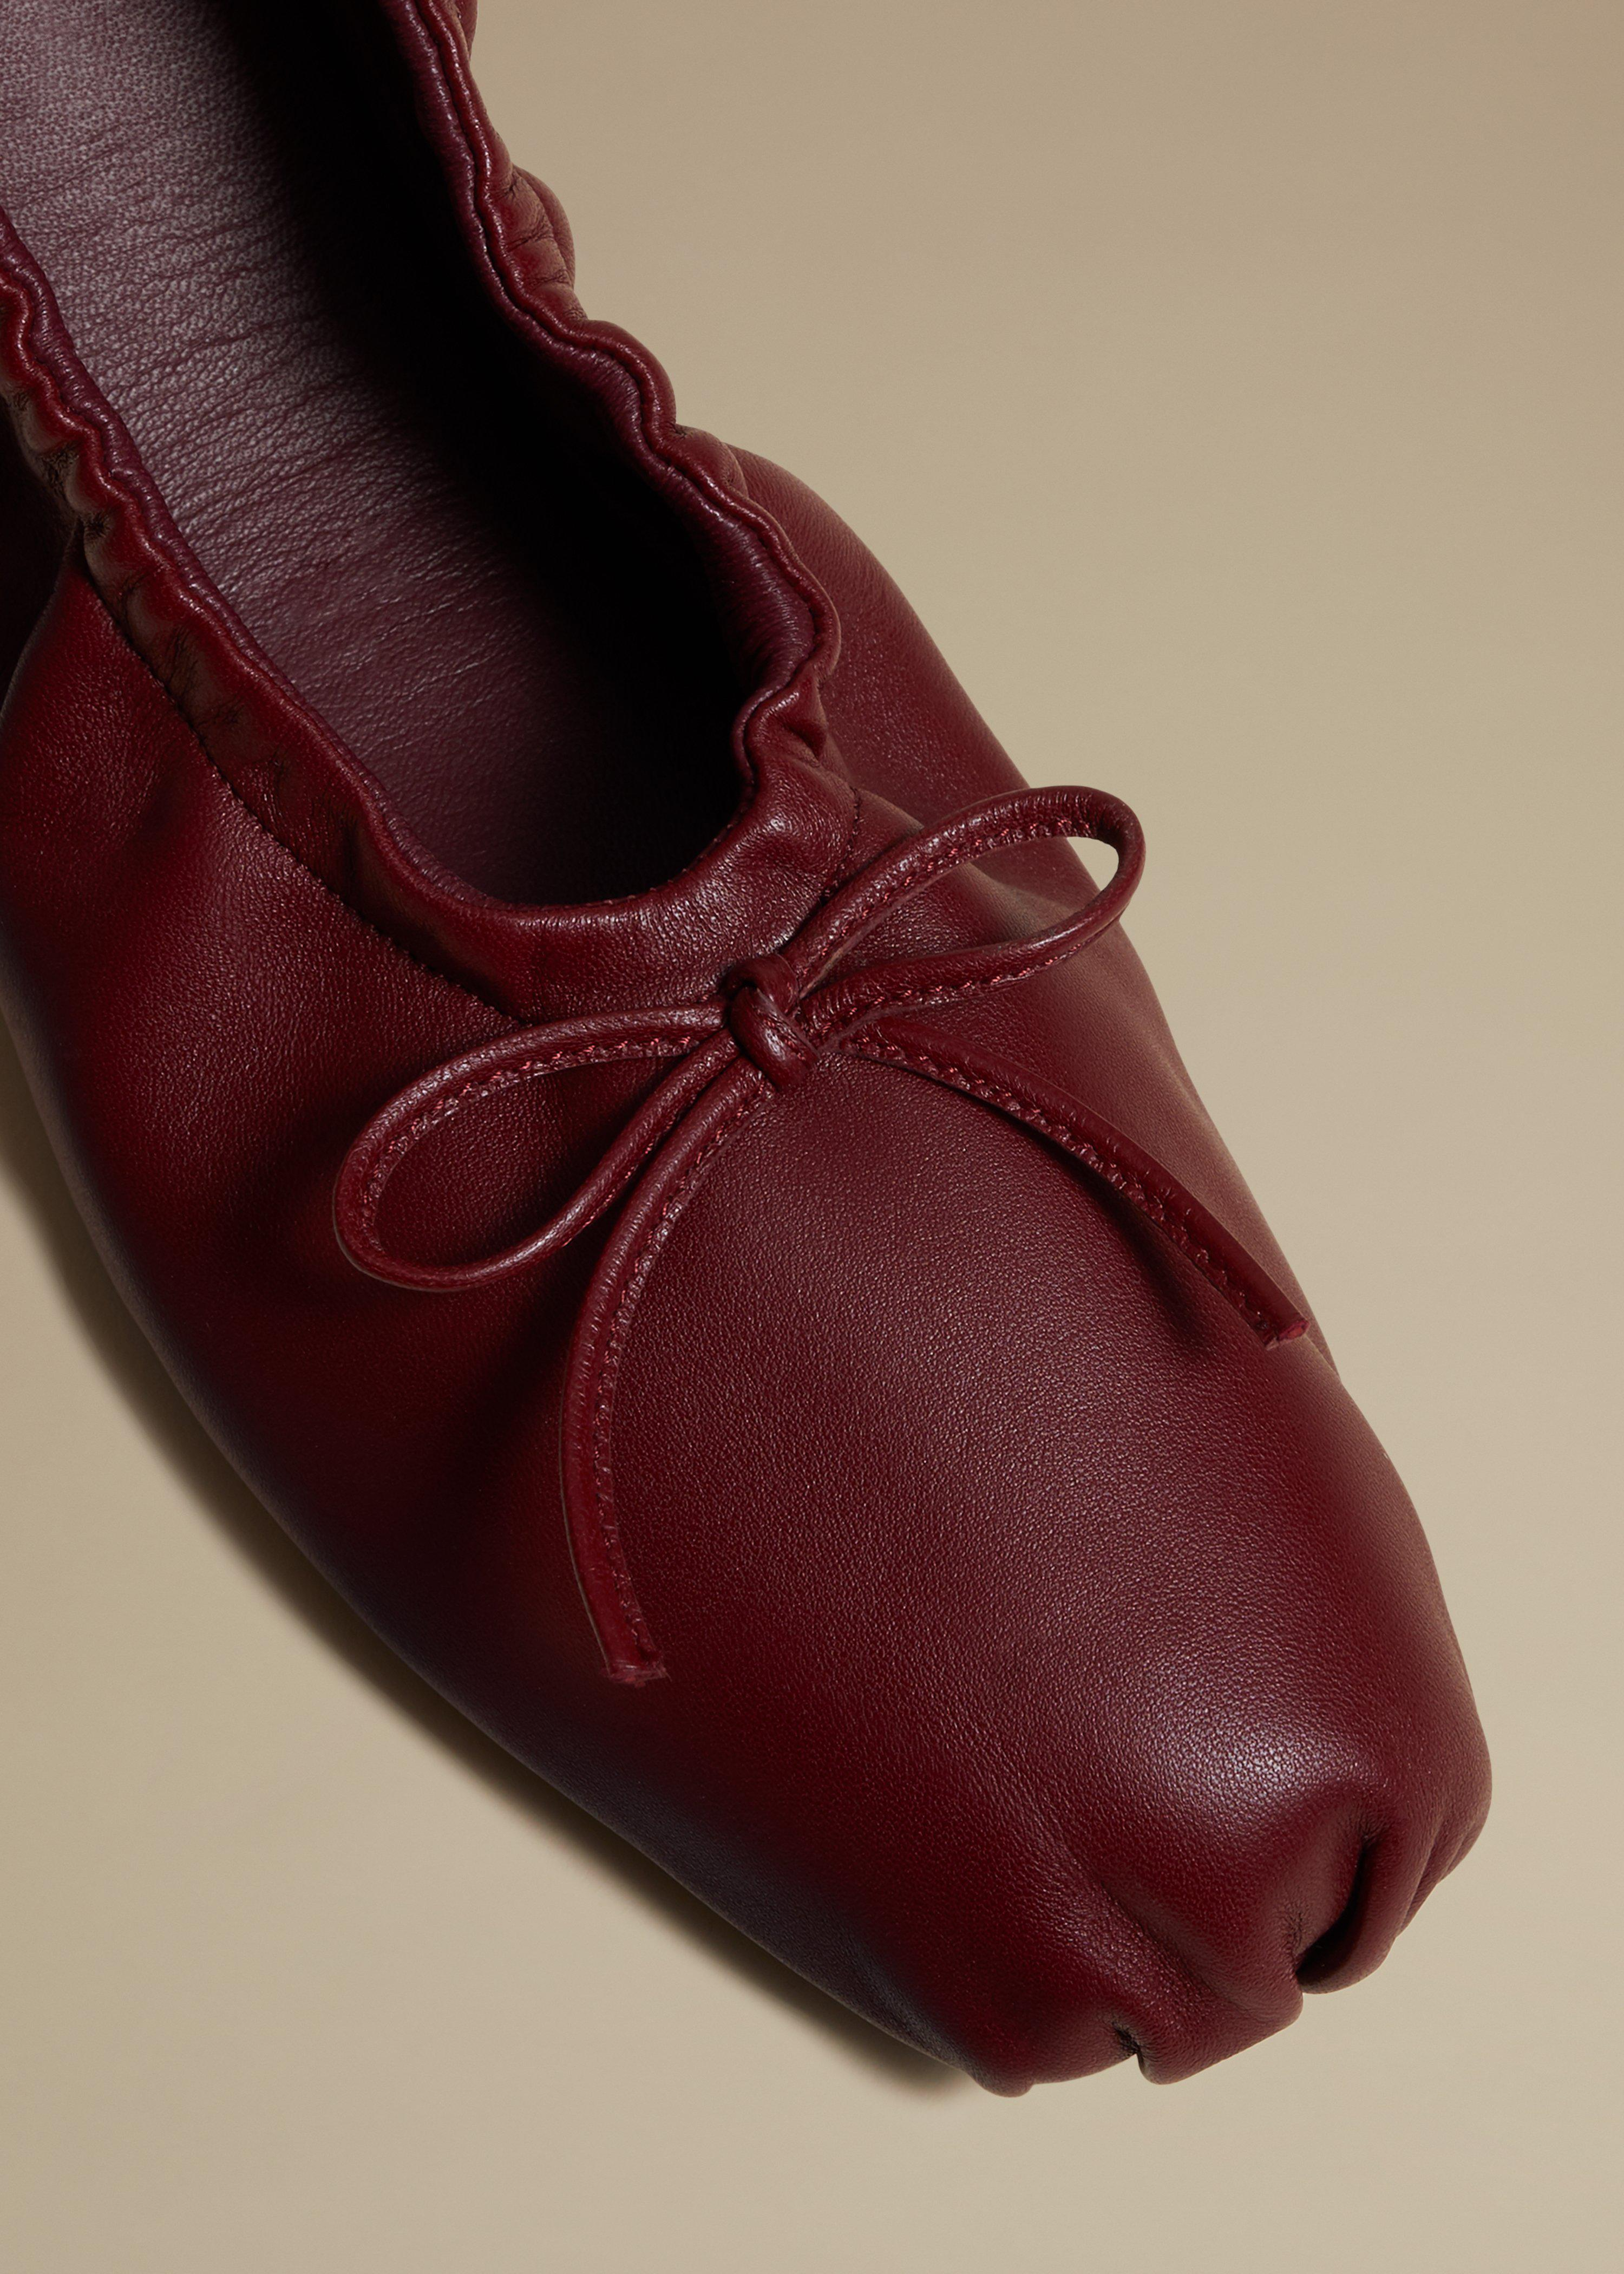 The Ashland Ballet Flat in Bordeaux Leather 3